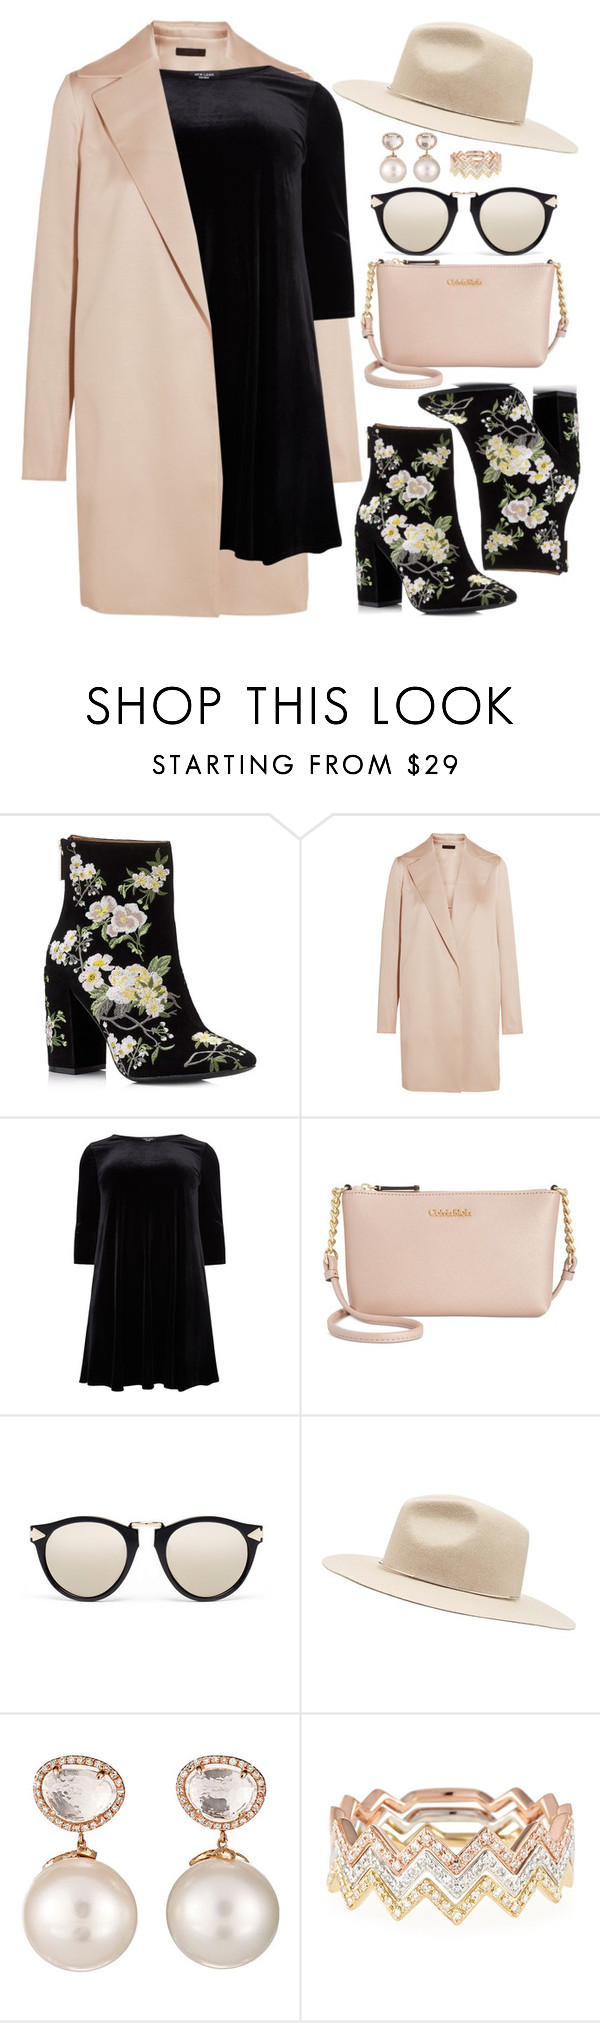 """""""Boots stamped!!!"""" by bmaroso ❤ liked on Polyvore featuring Miss Selfridge, The Row, New Look, Calvin Klein, Karen Walker, Witchery, Samira 13, EF Collection, Flowers and booties"""